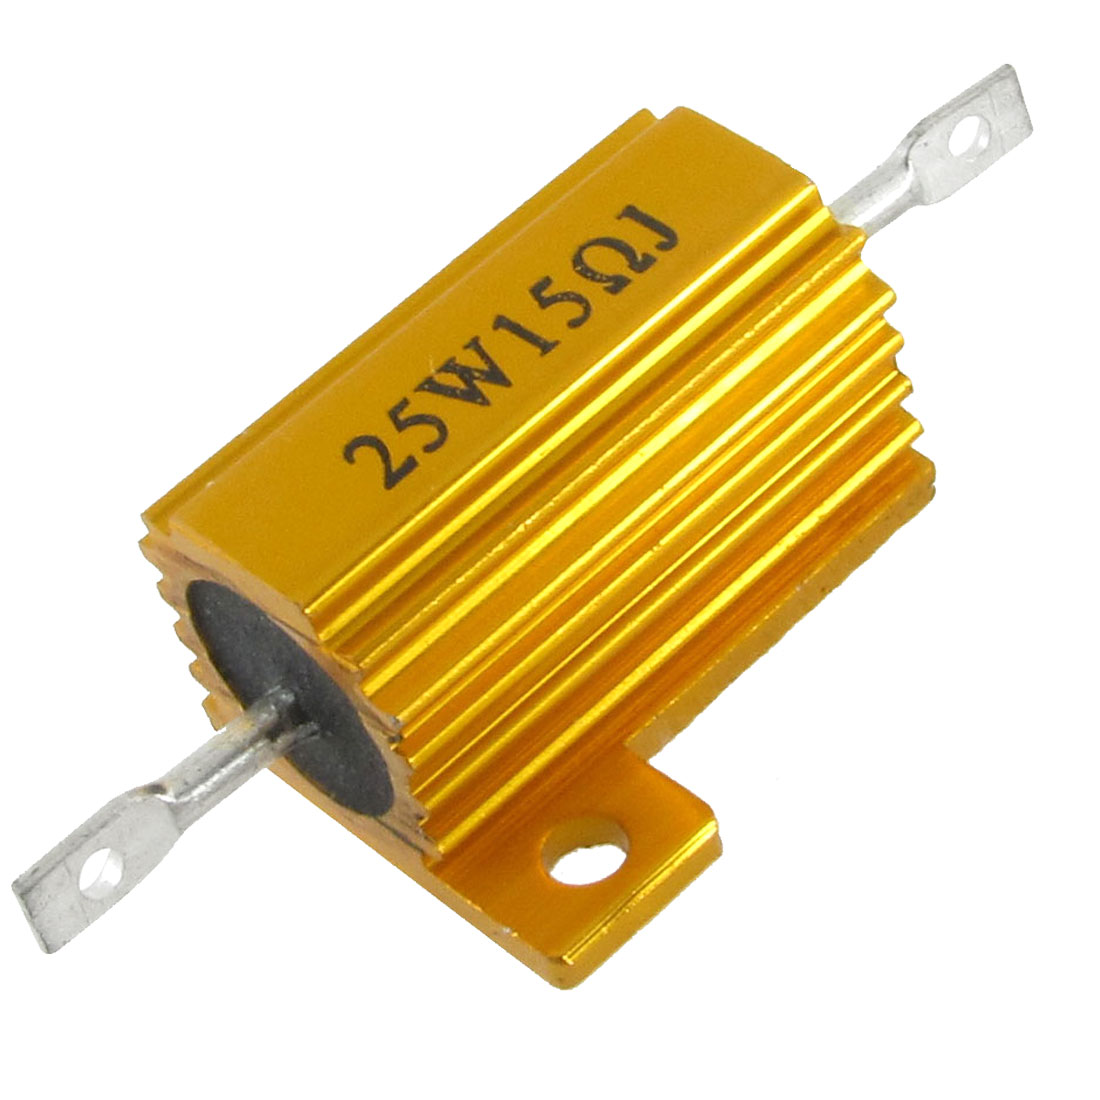 Chassis Mount Wirewound Aluminium Housed Power Resistor 5% 25W 15 Ohm Gold Tone